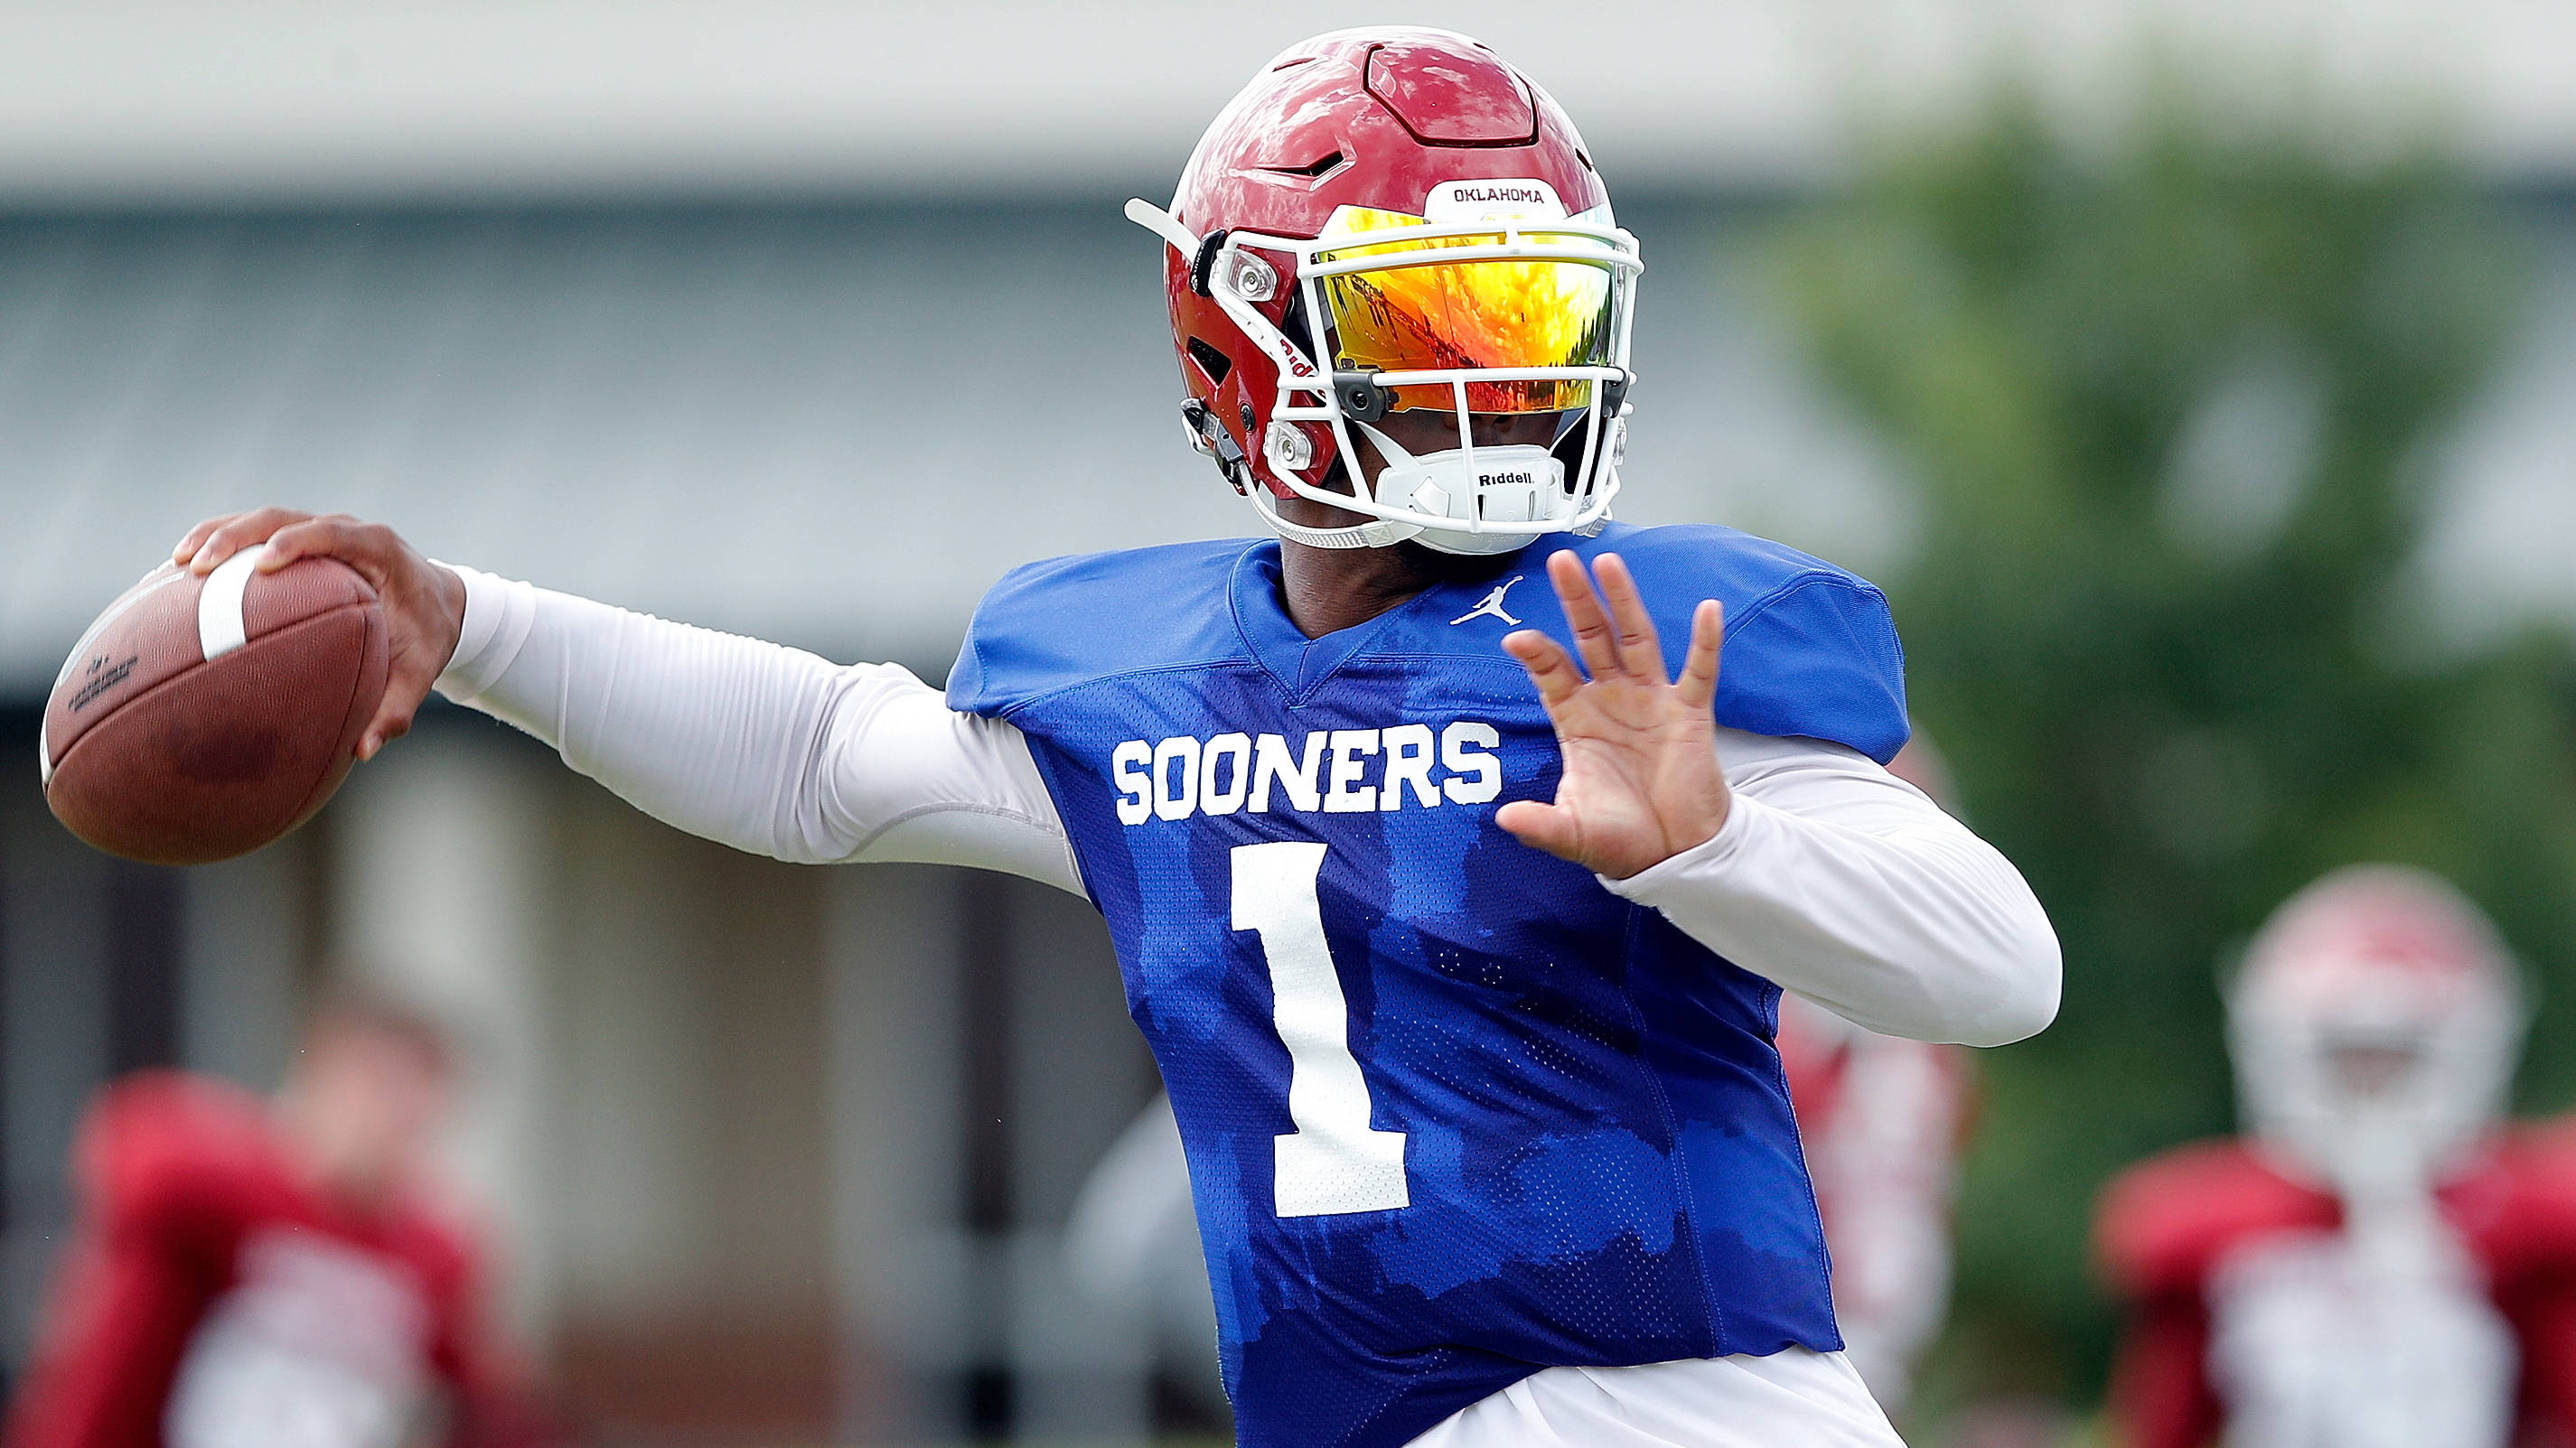 Kyler Murray Named Starting Quarterback - University of Oklahoma